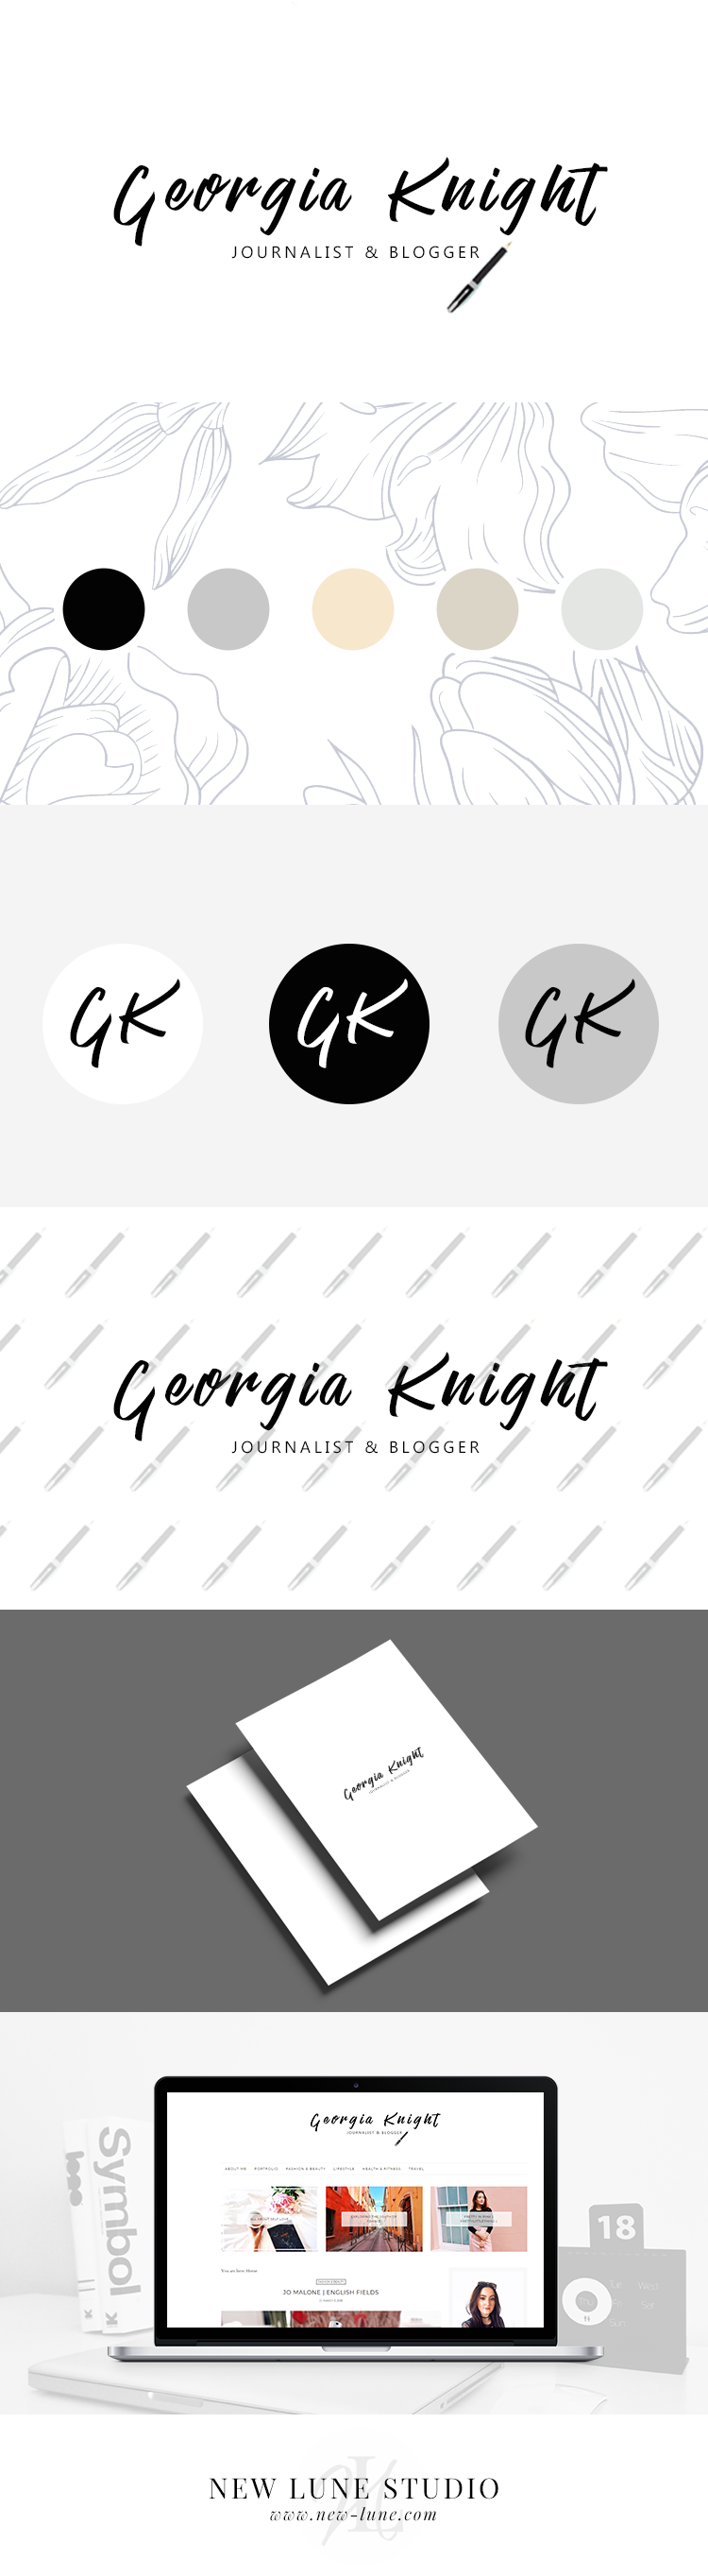 portfolio-georgia knight-new lune